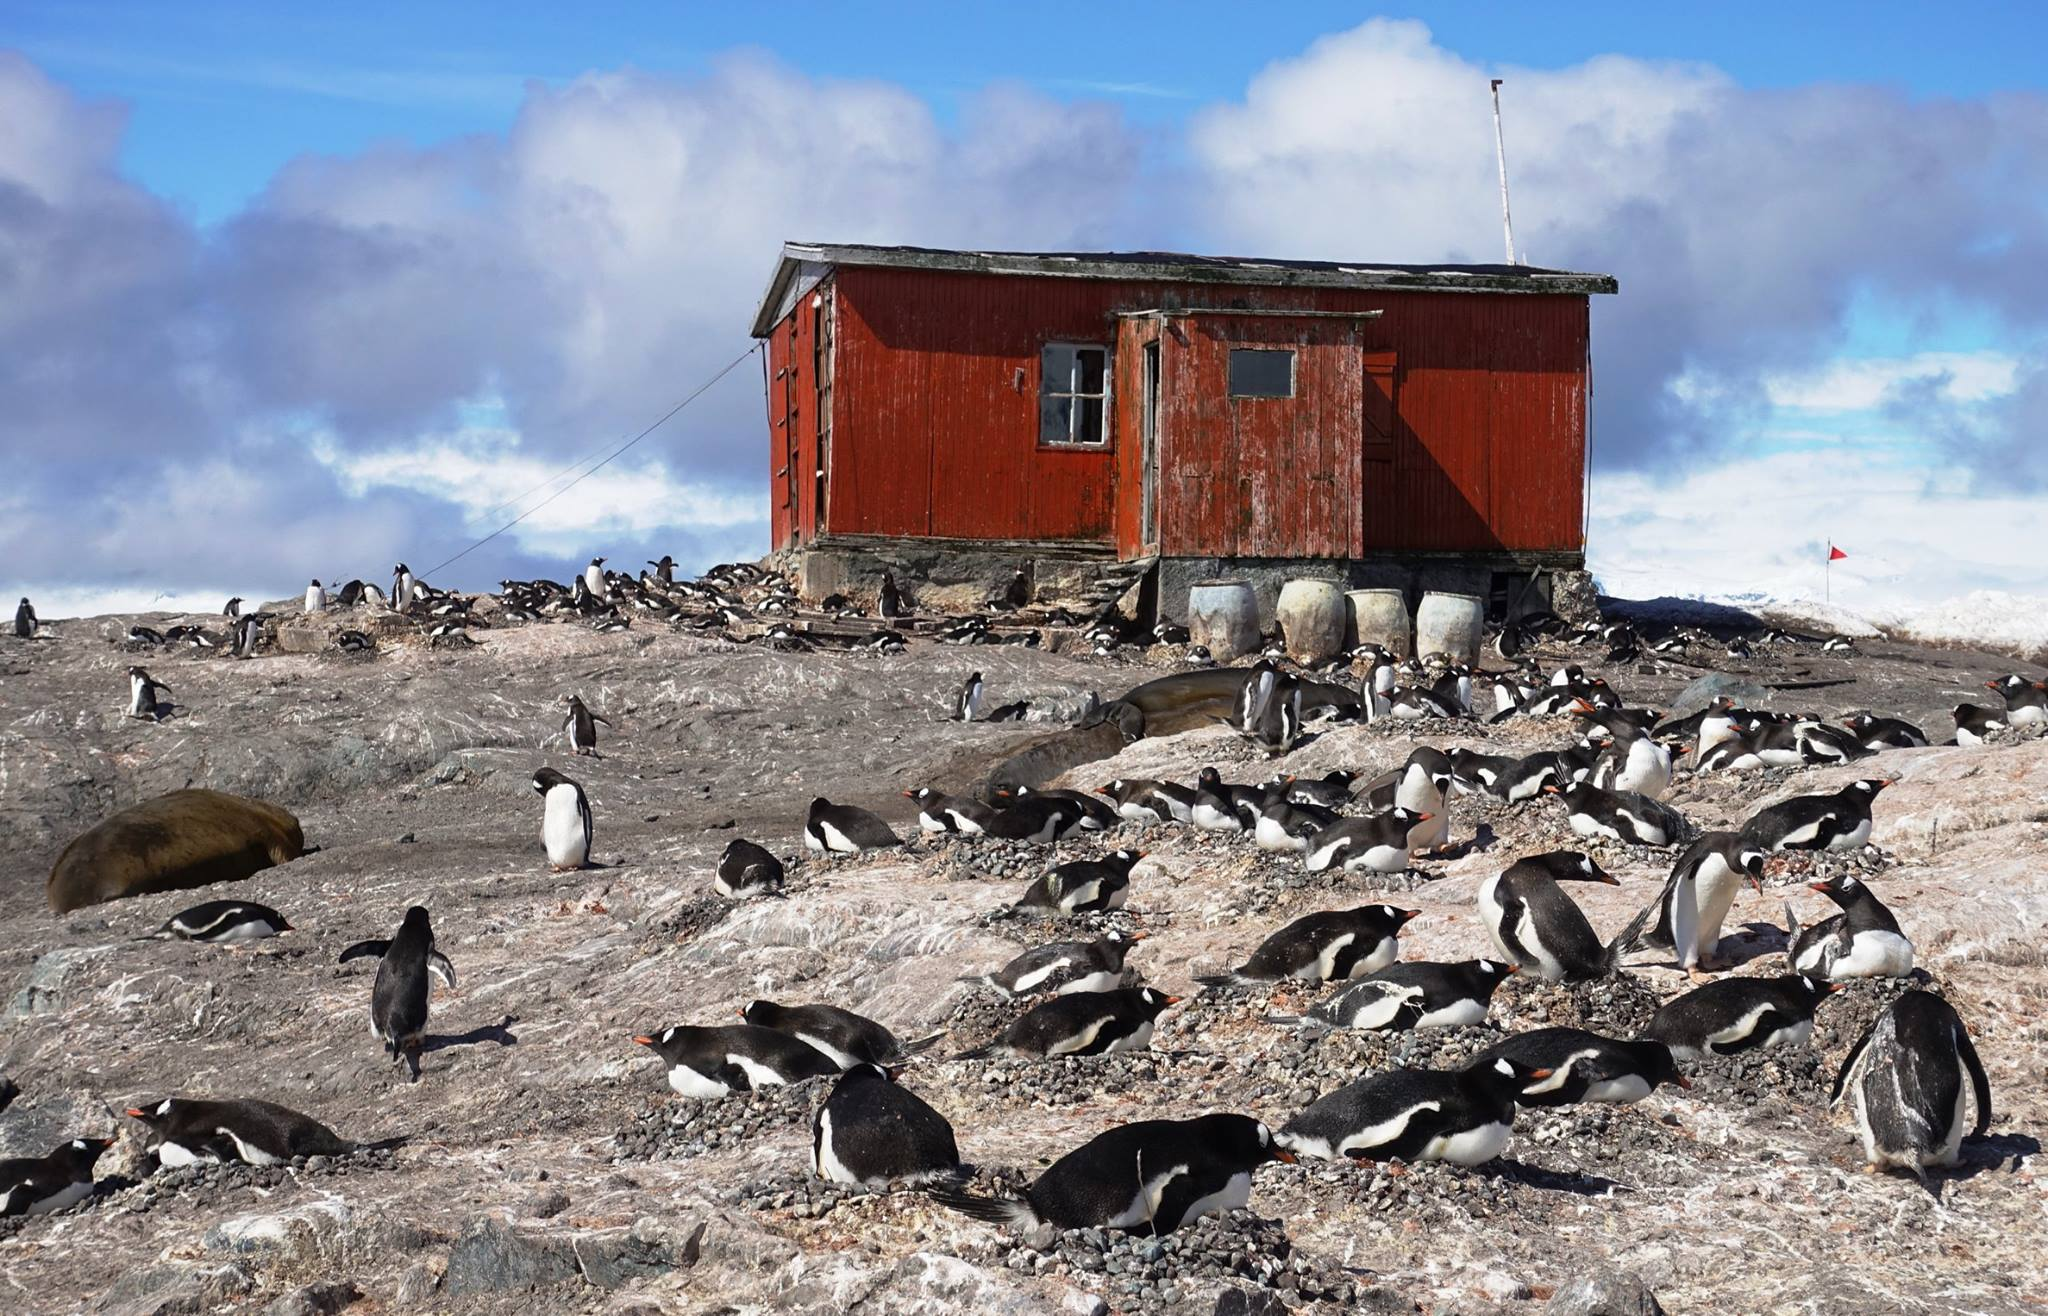 Gentoo penguins nest near an old station at Mikkelsen Harbour, at the northern end of the Palmer archipelago in Antarctica.